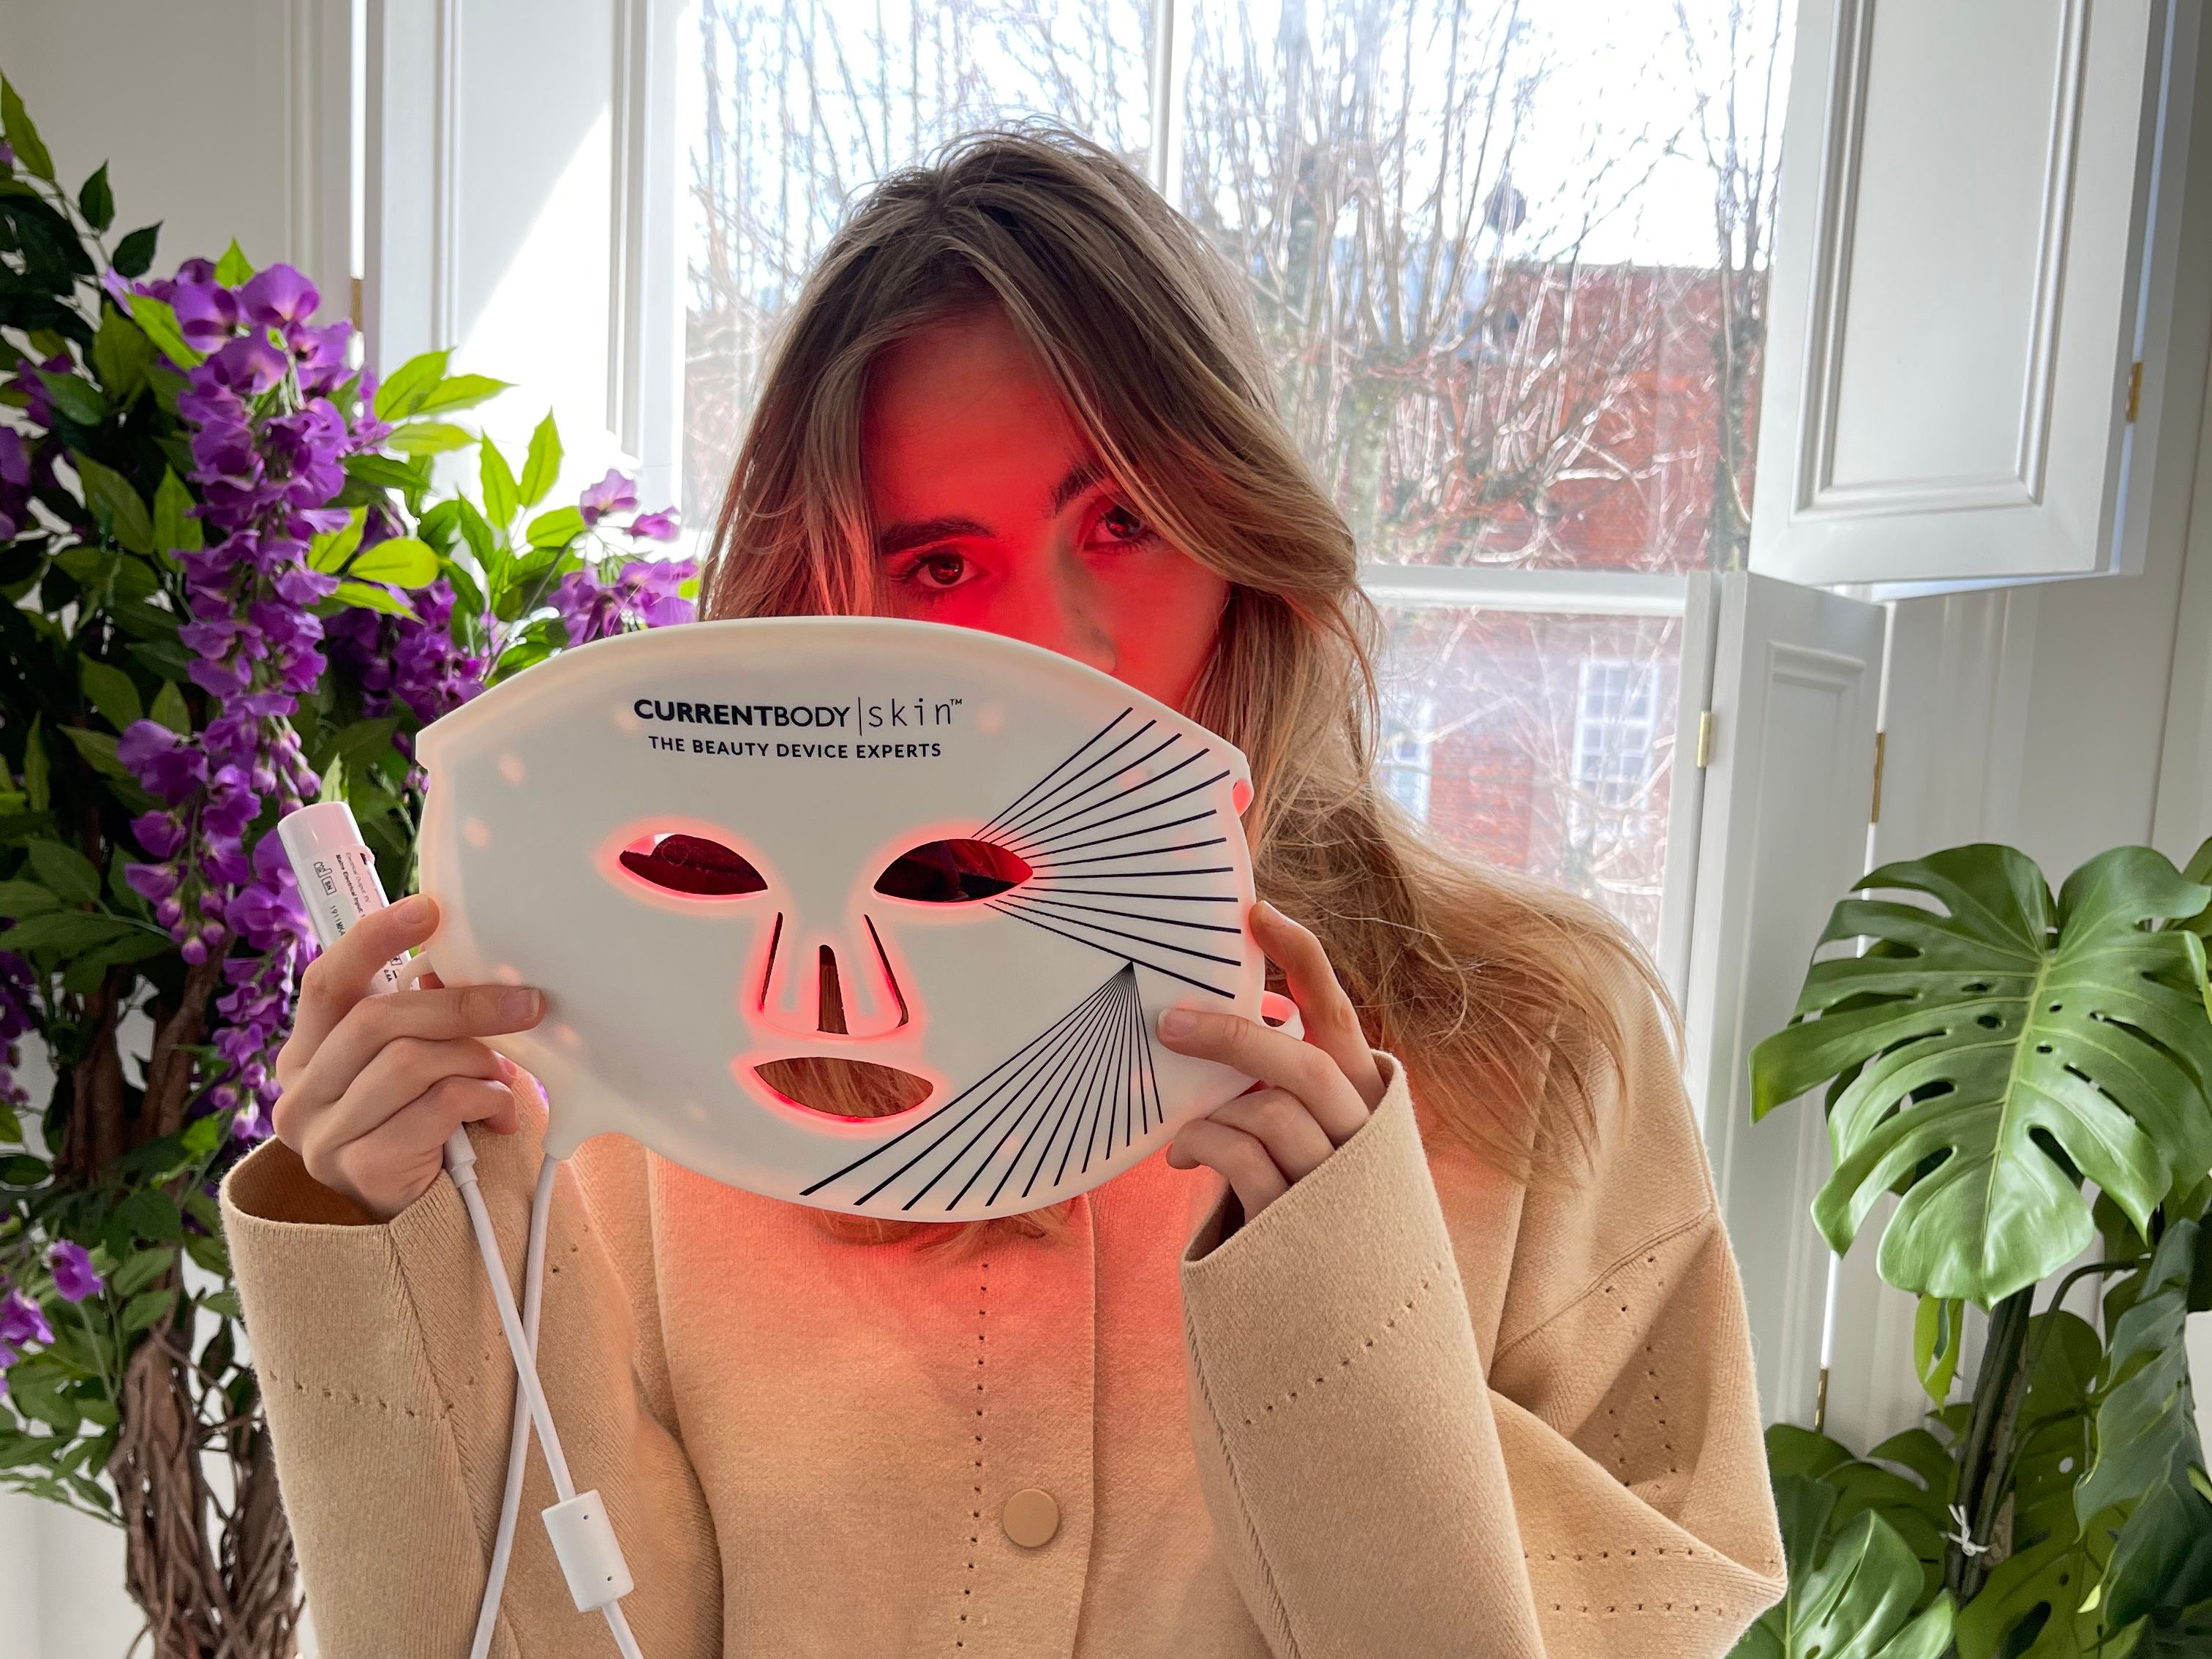 The device Suki Waterhouse is loving